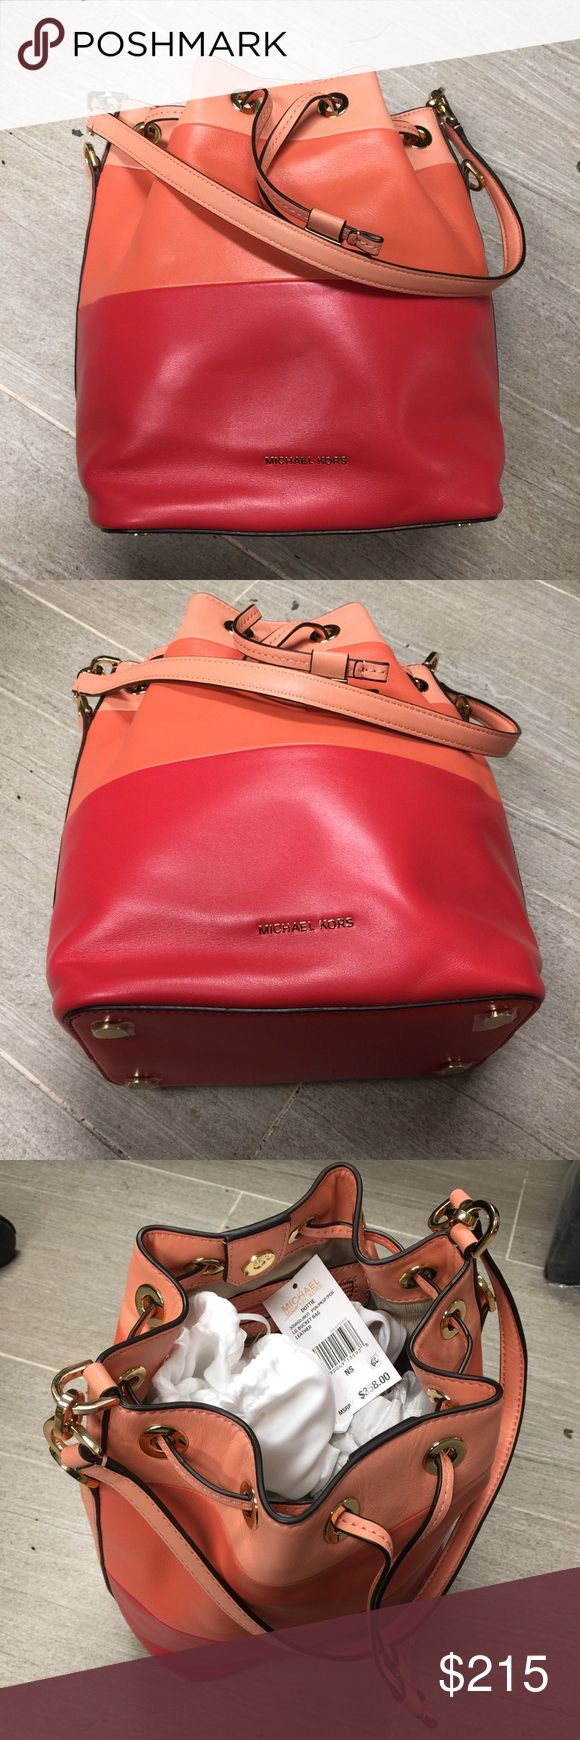 Michael Kors Dottie large bucket bag New with tag  Persimmon pink grapefruit peac Bags Shoulder Bags